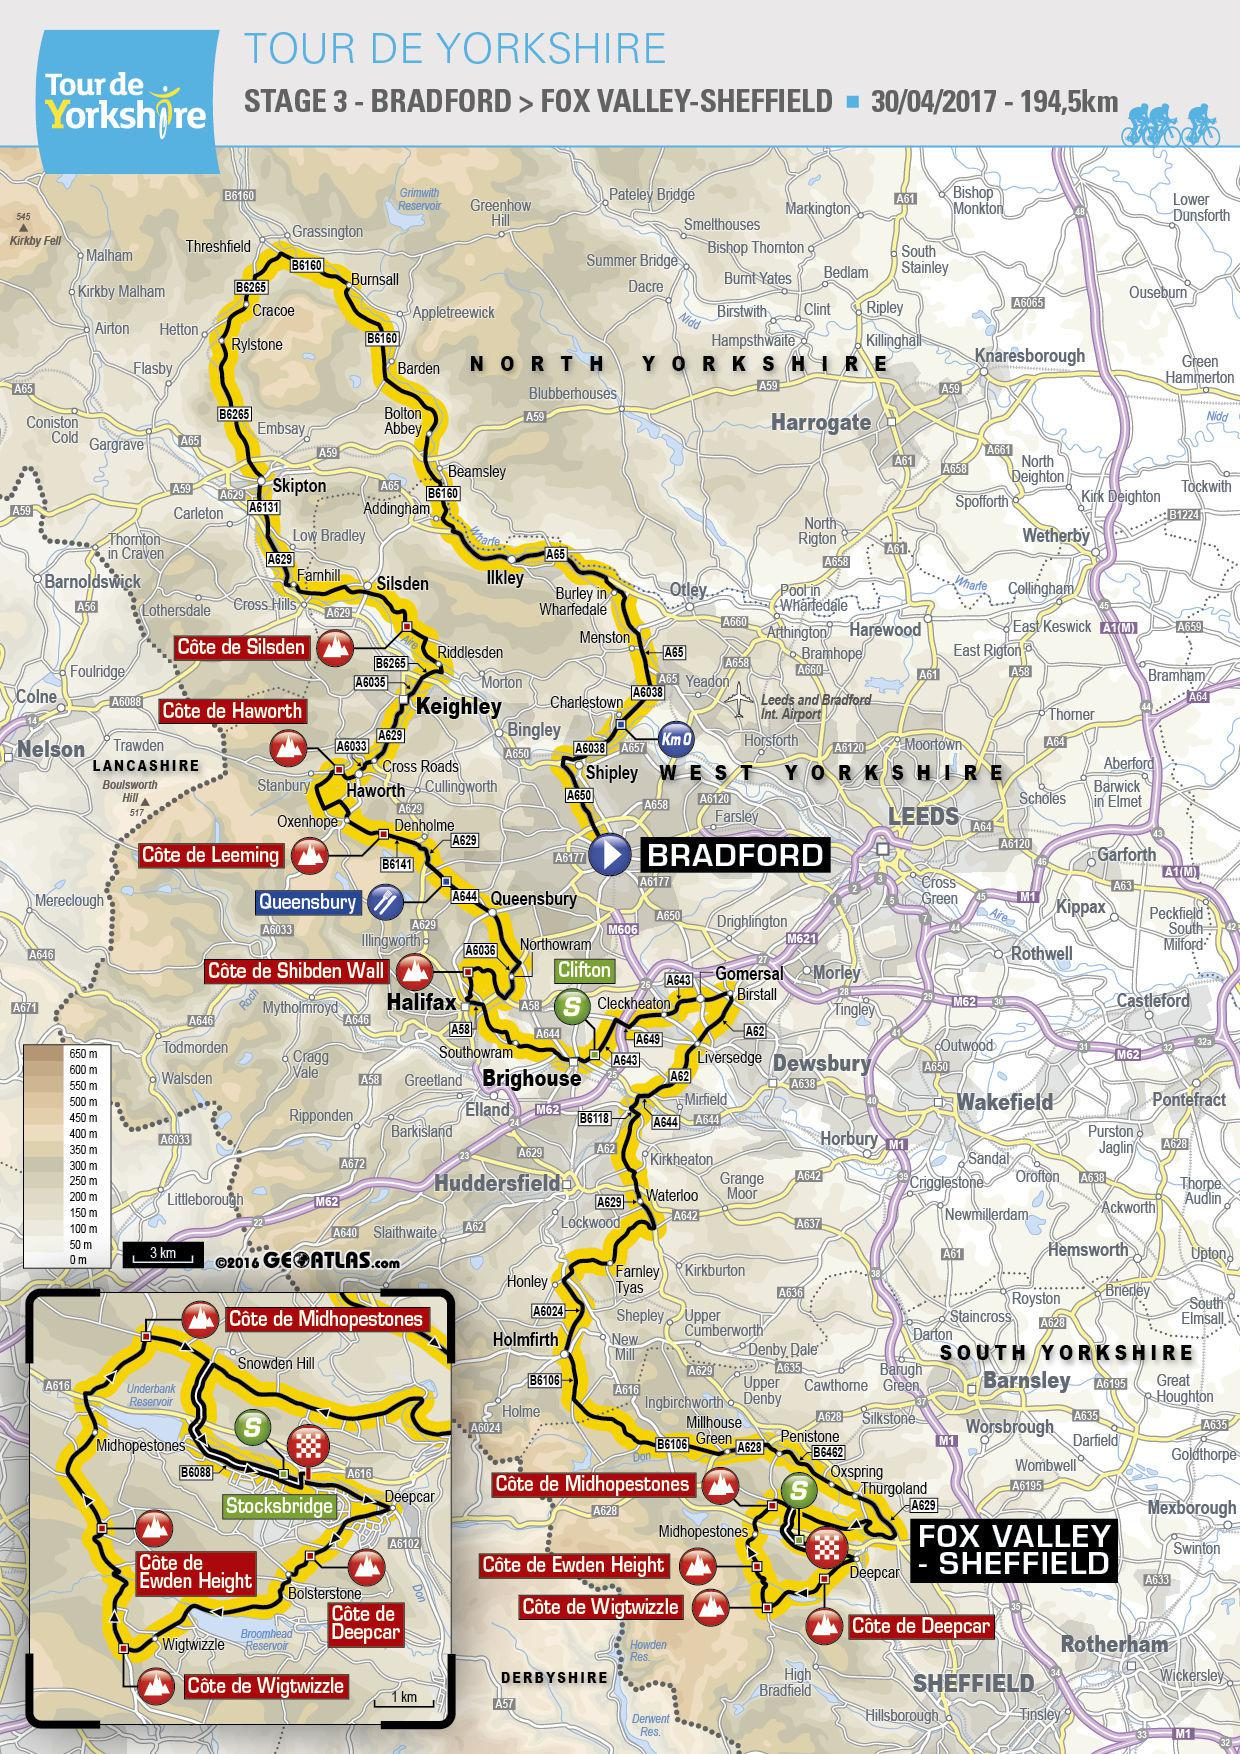 Stage 3 of the Tour de Yorkshire 2017